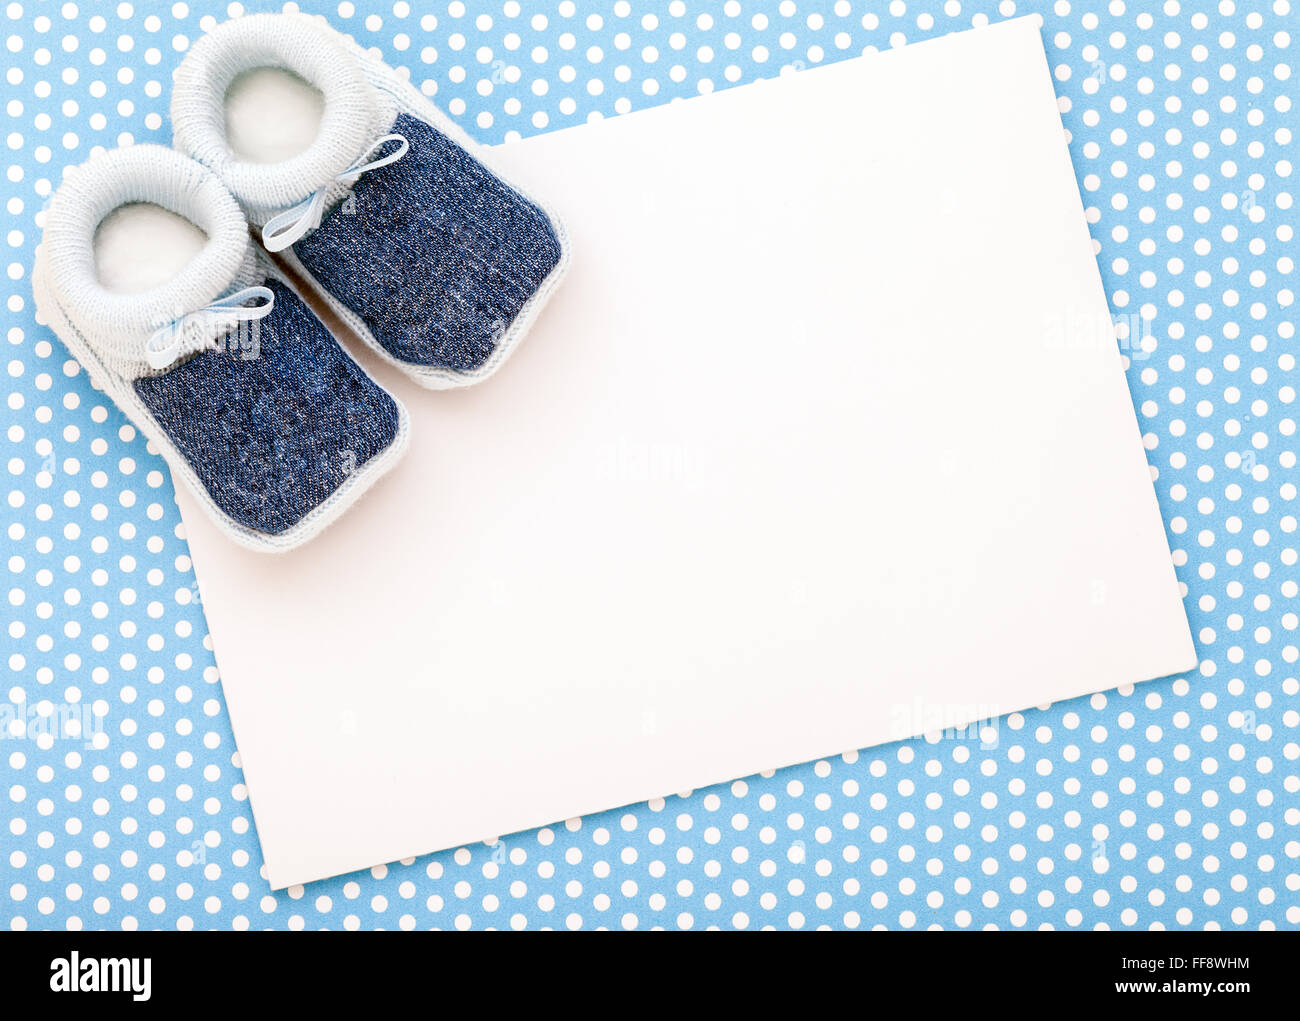 Polka Dot Baby Shoes